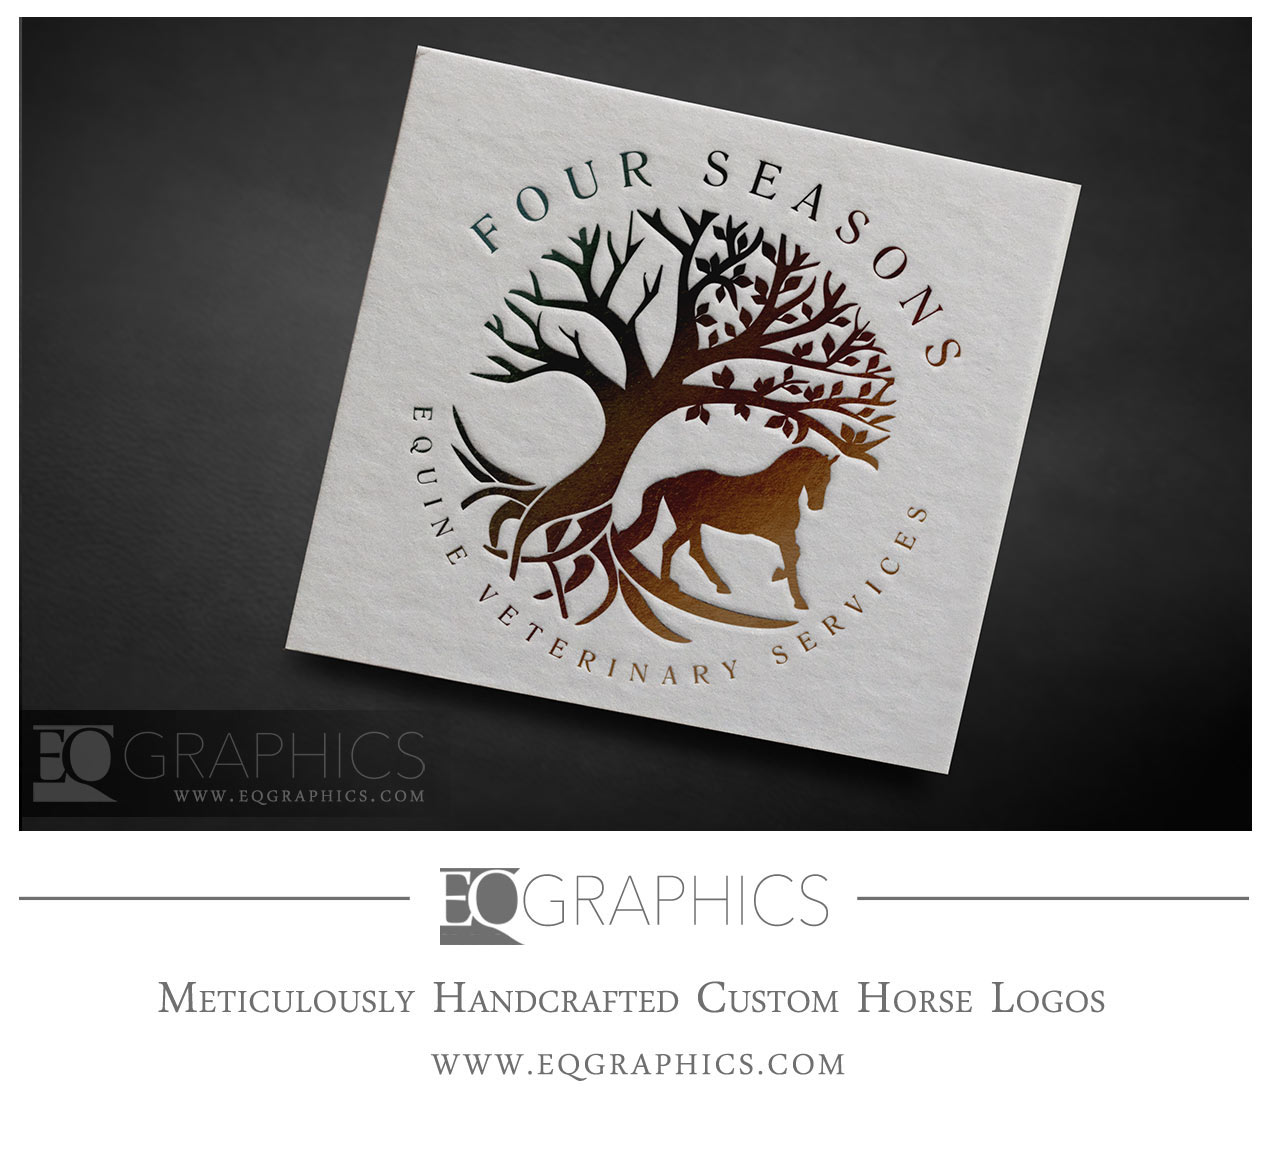 Four Seasons Equine Veterinary Services Logo Design Horse and Tree by EQ Graphics Logos